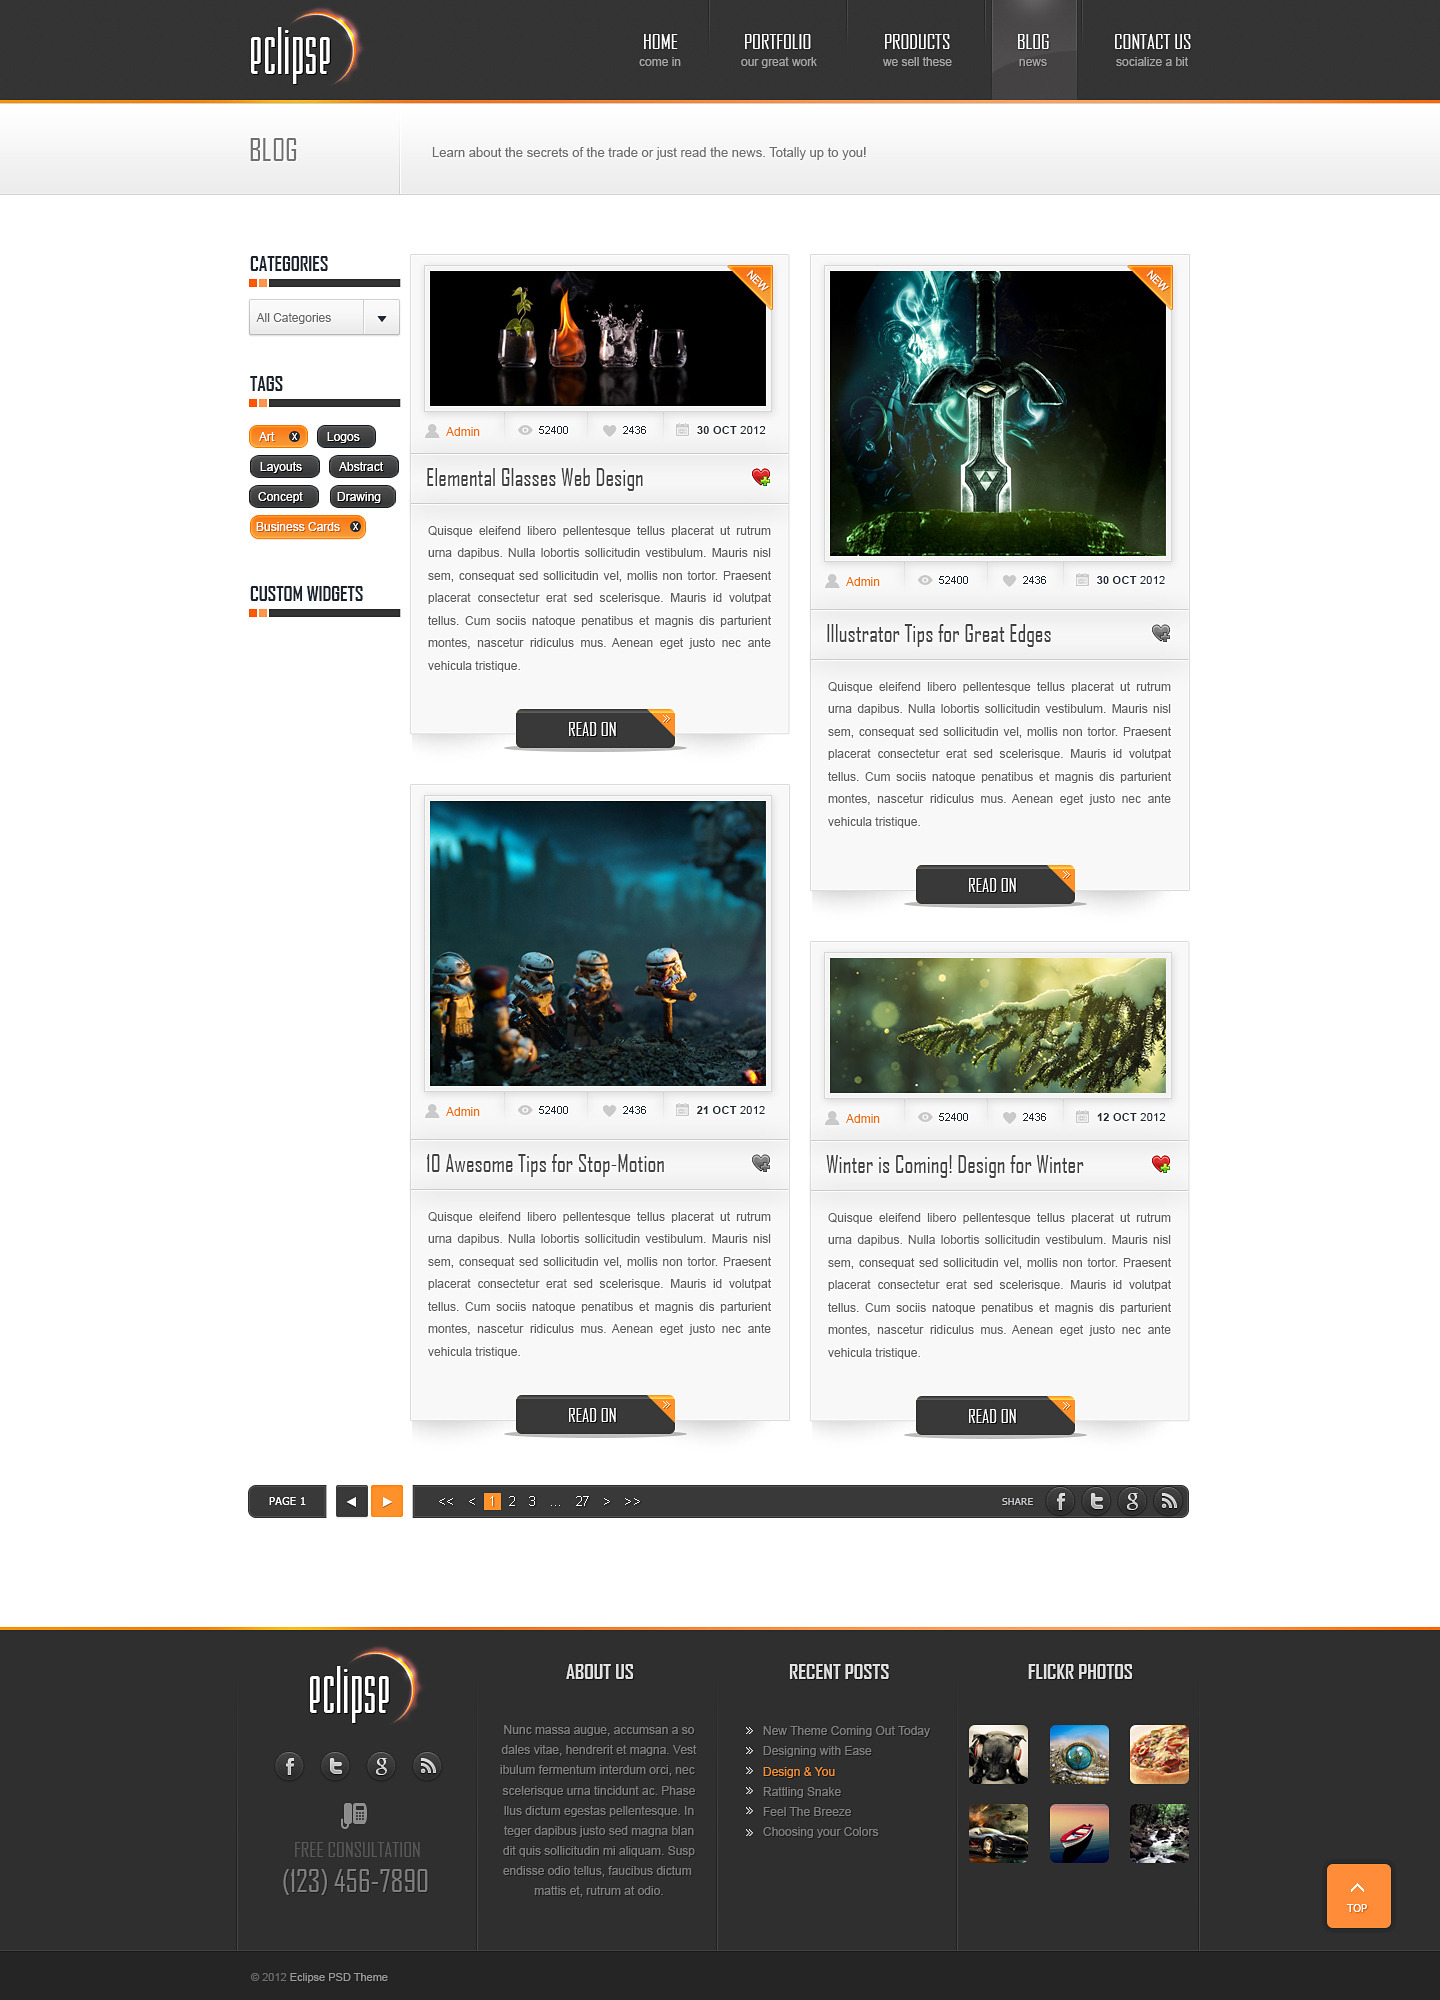 Eclipse - Premium PSD Template